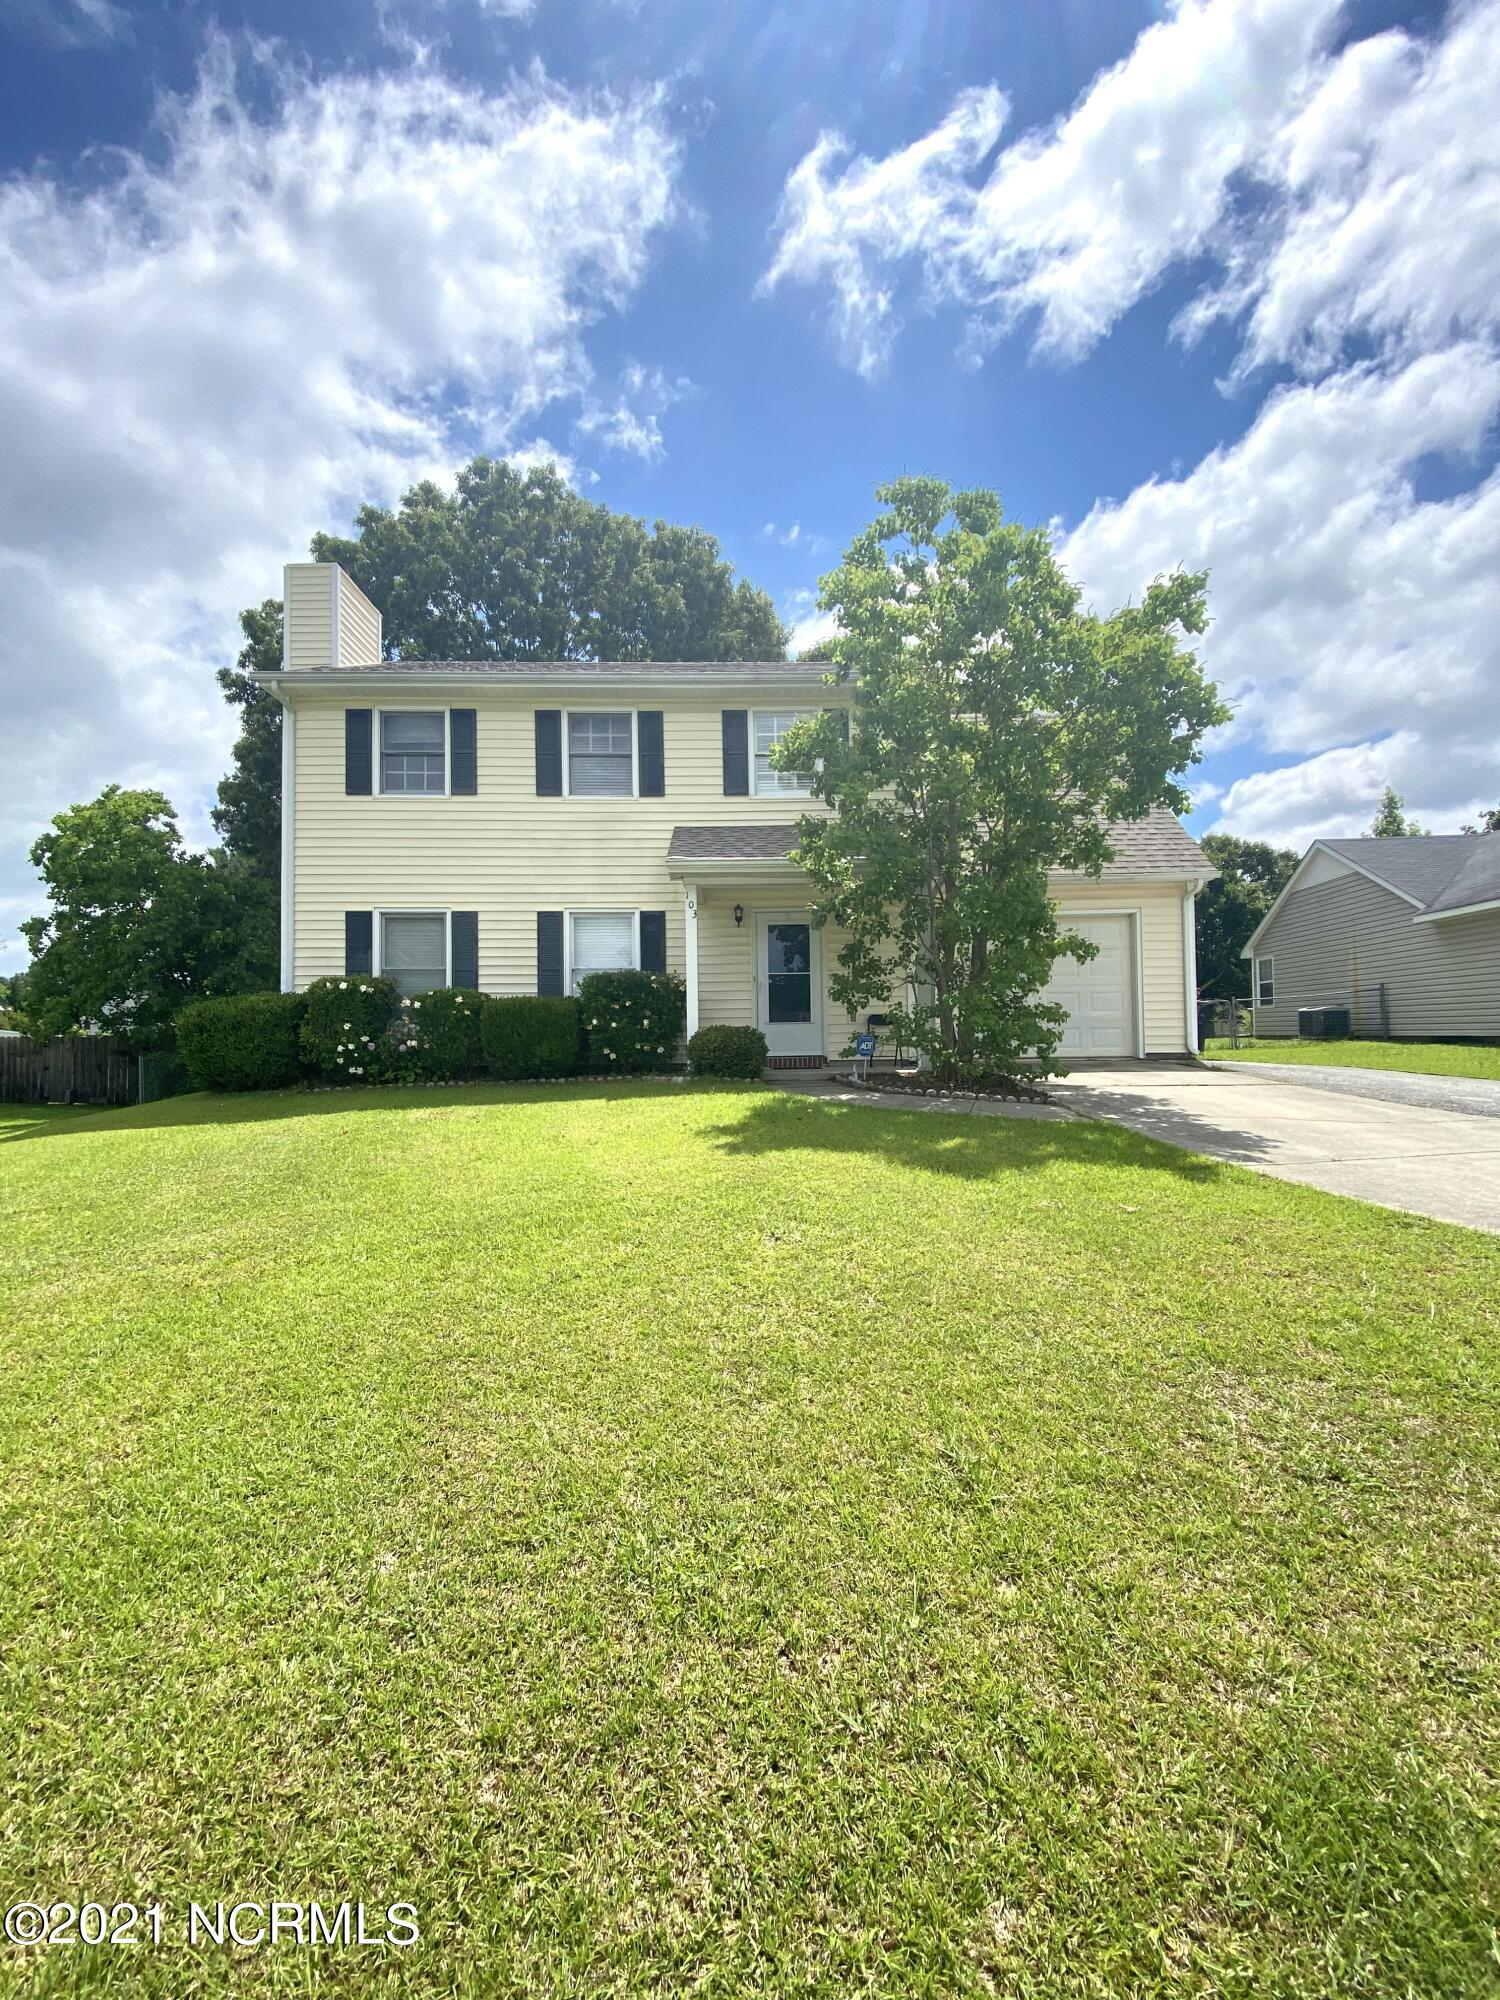 Conveniently located to Camp Lejeune, MCAS New River, shopping, and restaurants is this 3-bedroom 2.5 bath home in a cul-de-sac.  The first floor features a large living room with fireplace, coat closet, spacious kitchen & dining room, pantry, laundry closet and half bath. On the second floor is the master bedroom with two closets and full bath with linen closet, additional two bedrooms, hall linen closet and full bath with entry to secret room above garage! The large backyard is backed by trees, fully fenced, has a large deck that's perfect for entertaining, and has a storage shed.